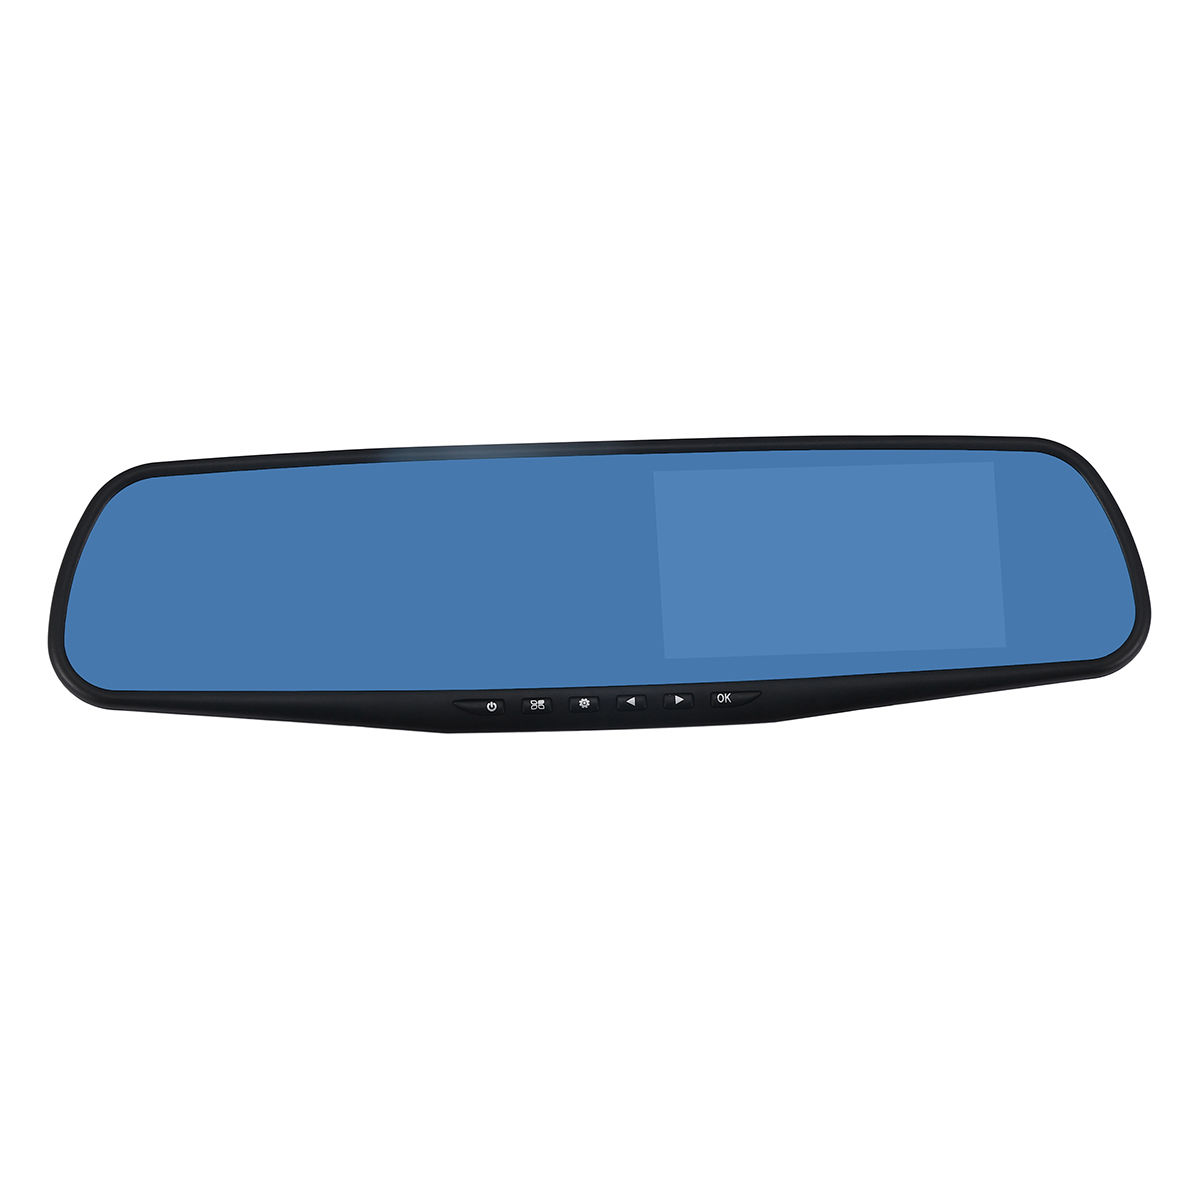 USB 2.0 Car DVR Built-in Camera Replacement Night Vision Recorder Set Rear View Mirror Parts Accessories